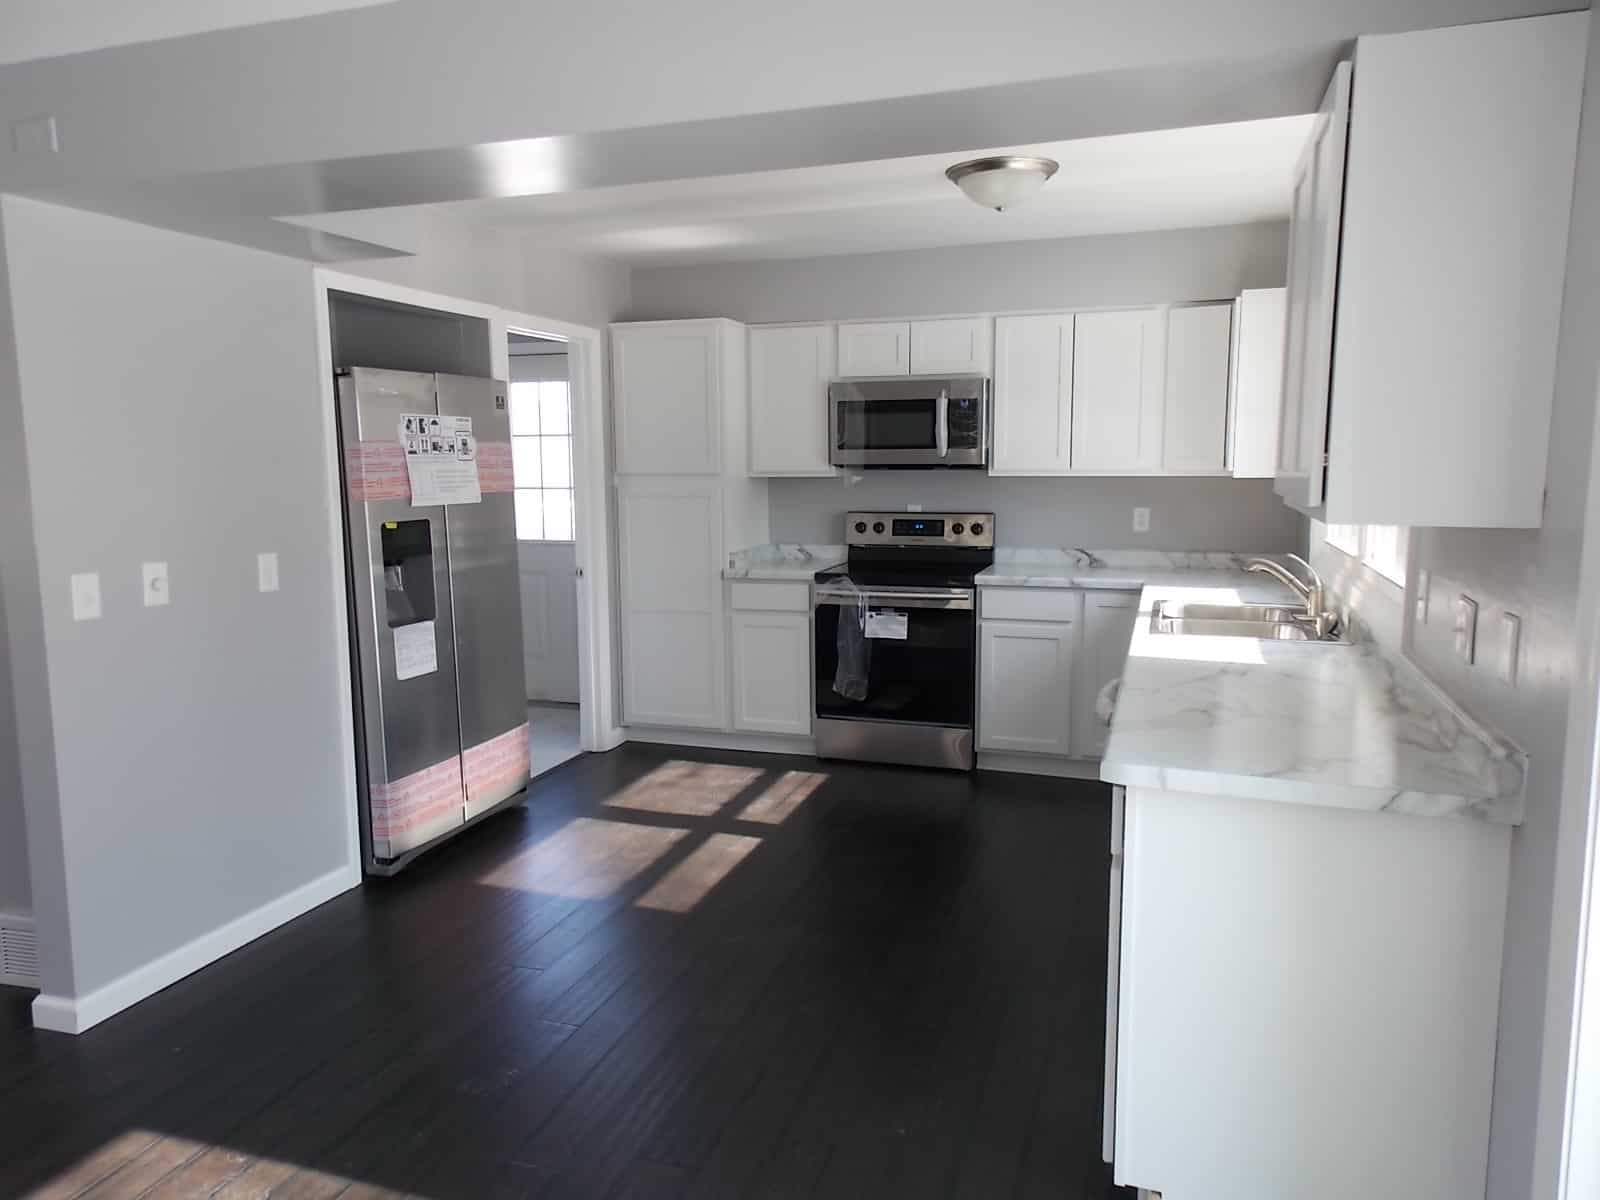 kitchen in Janesville home for sale